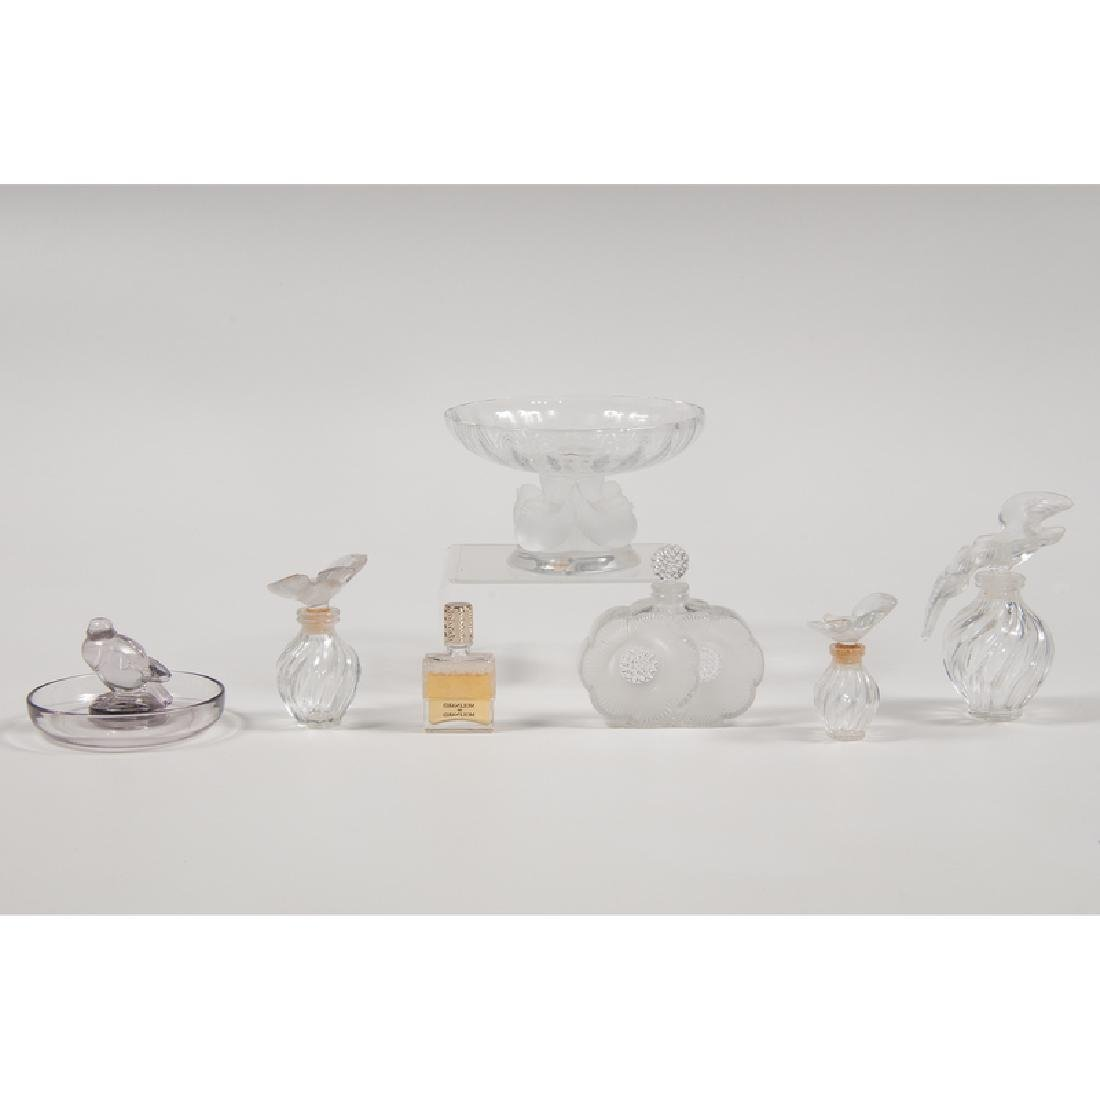 Lalique Perfume Bottles and Dishes - 2